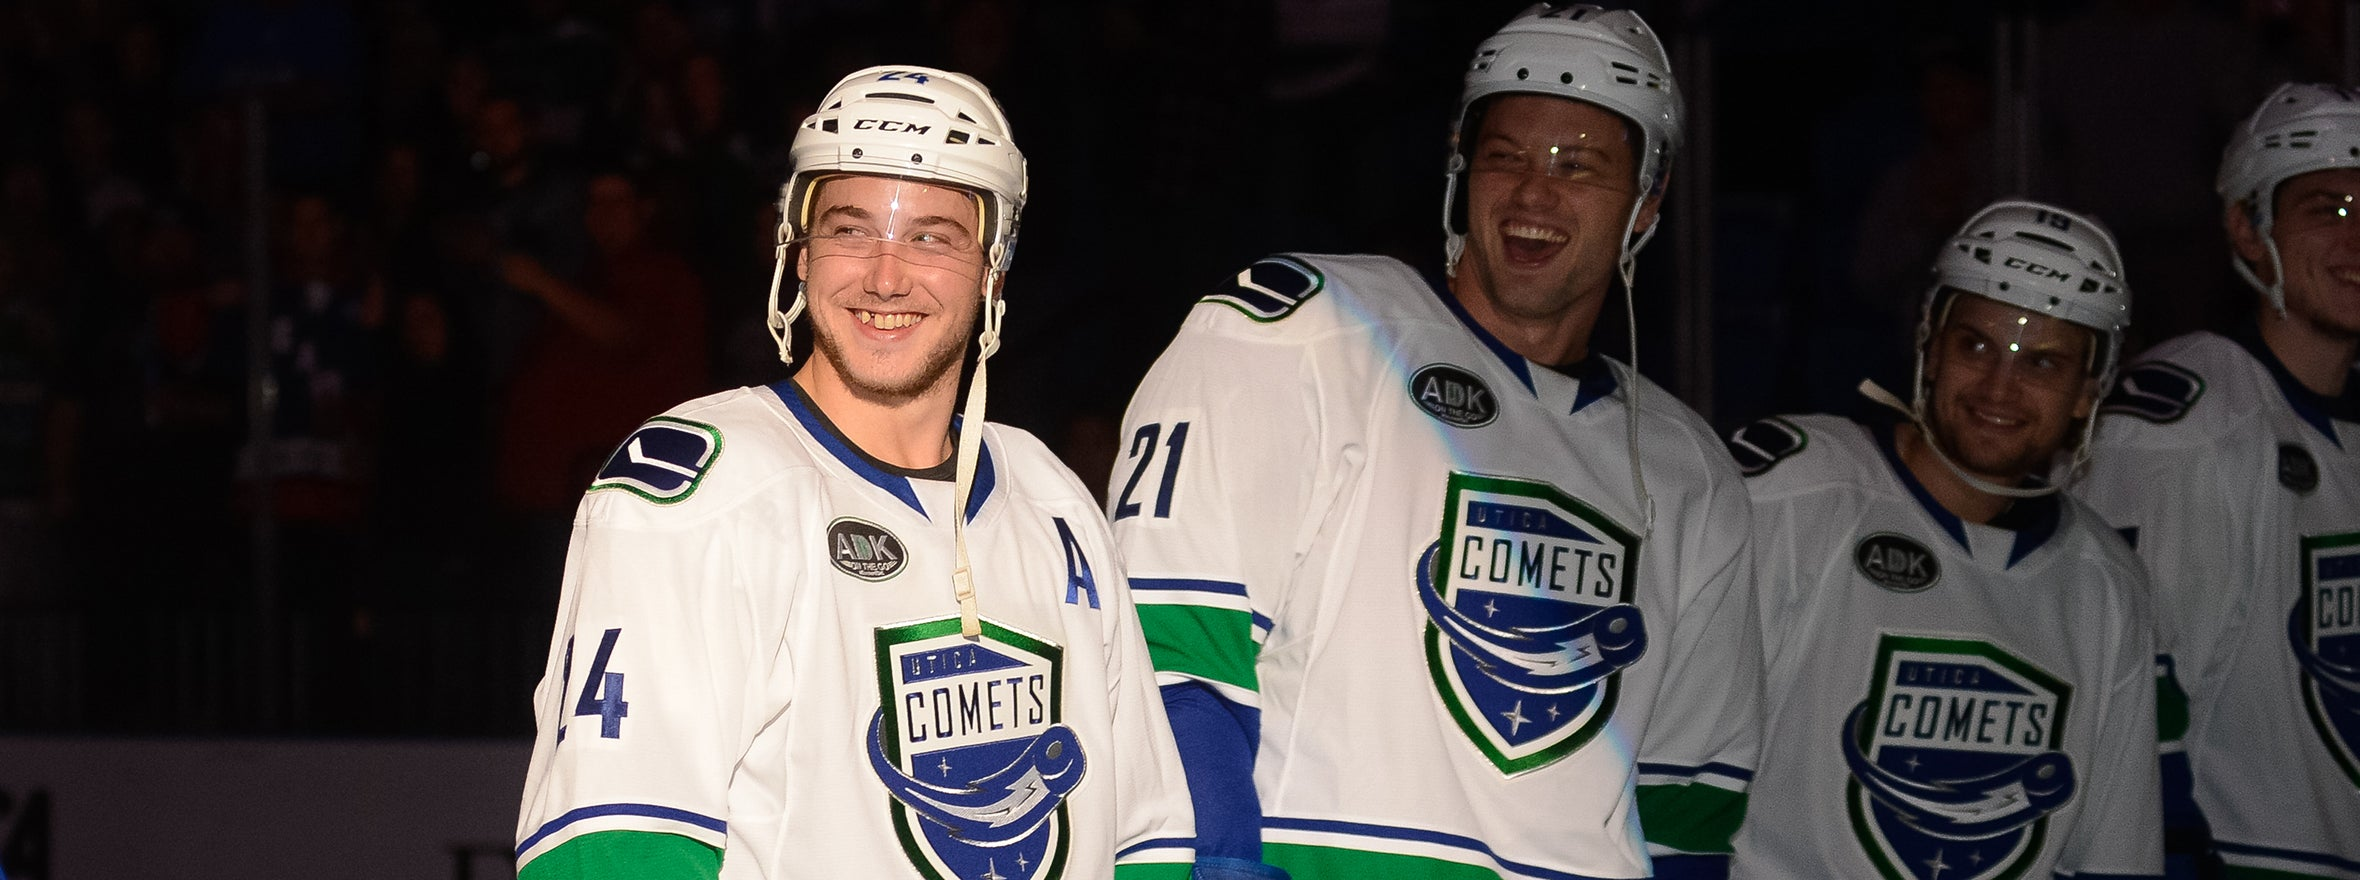 REID BOUCHER SELECTED TO AHL ALL-STAR CLASSIC